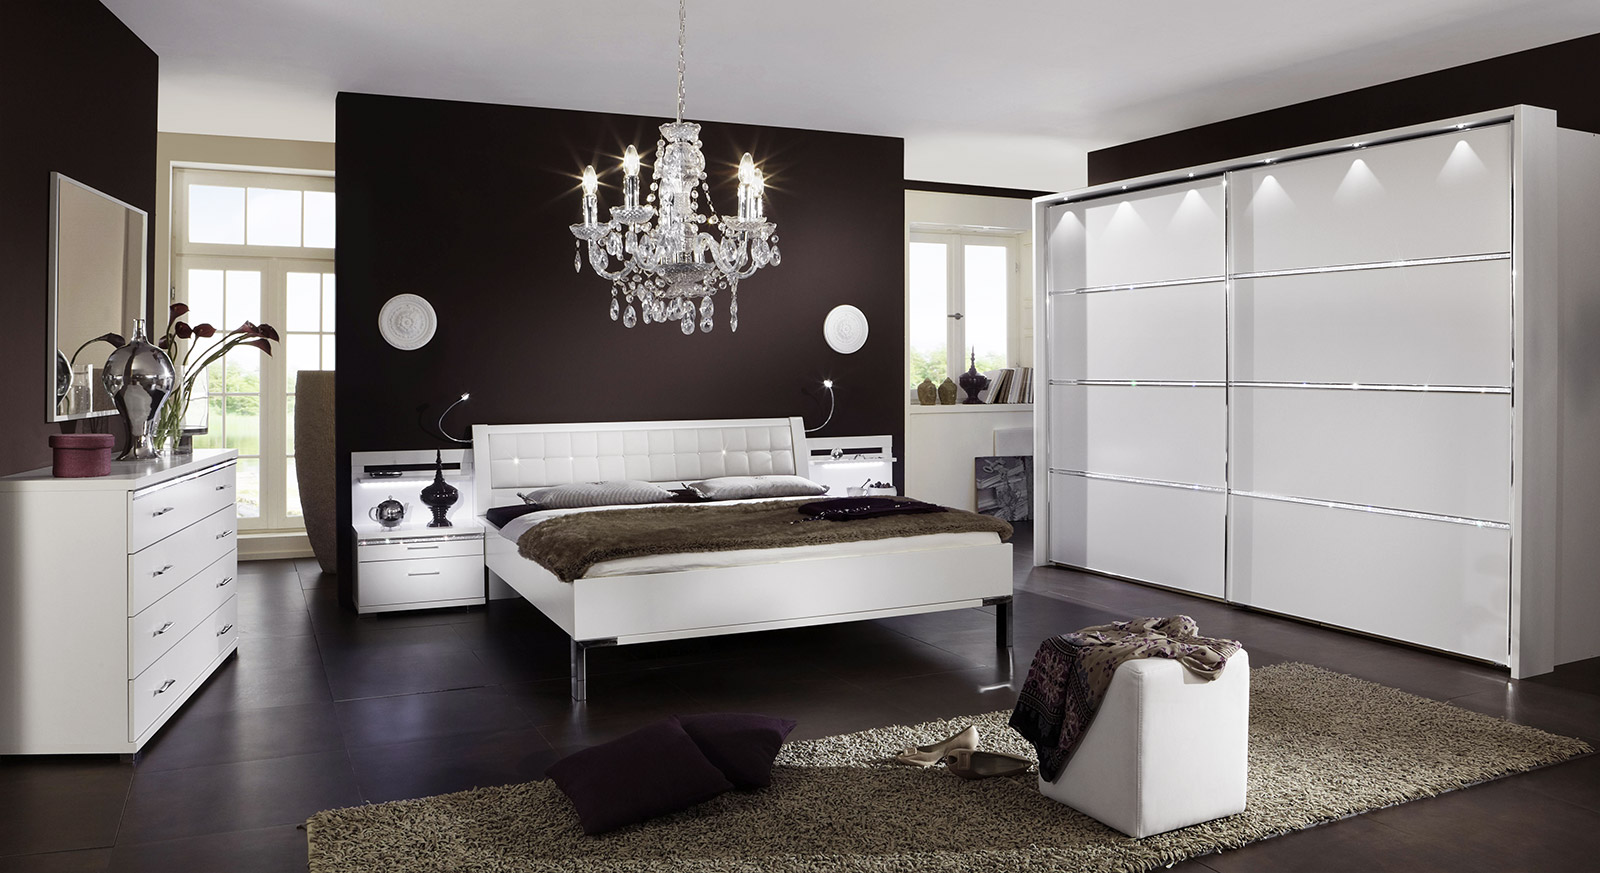 komplett schlafzimmer wei mit strasssteinen huddersfield. Black Bedroom Furniture Sets. Home Design Ideas